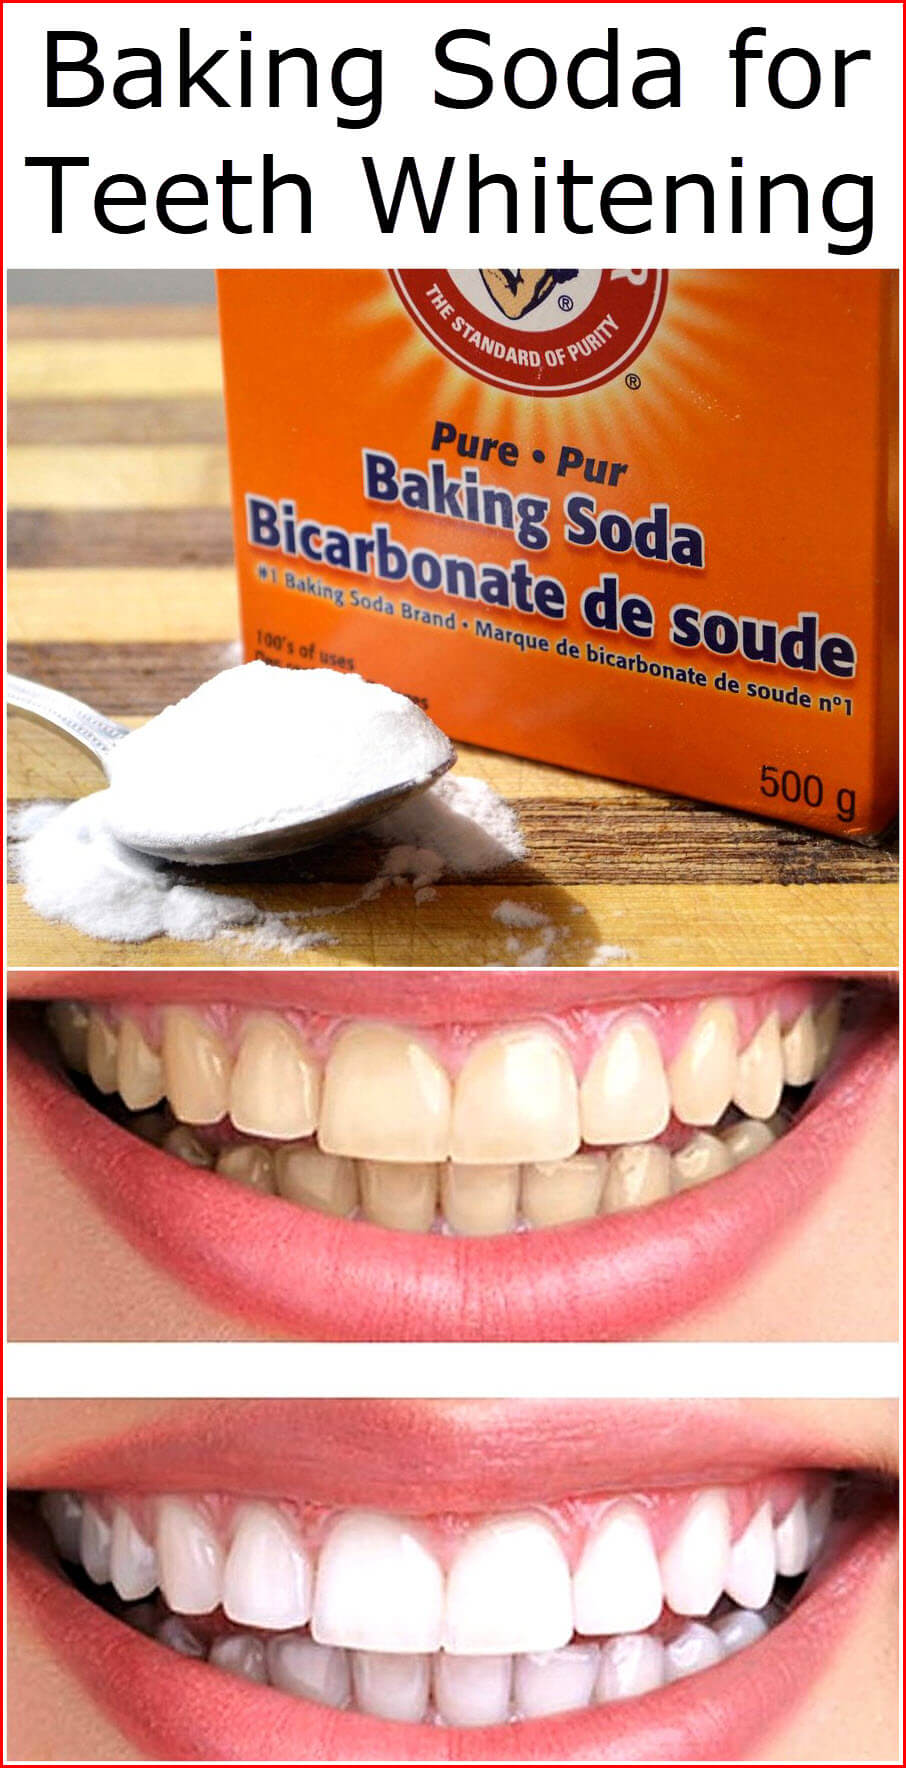 Baking Soda For Teeth Whitening Baking Soda Uses And Diy Home